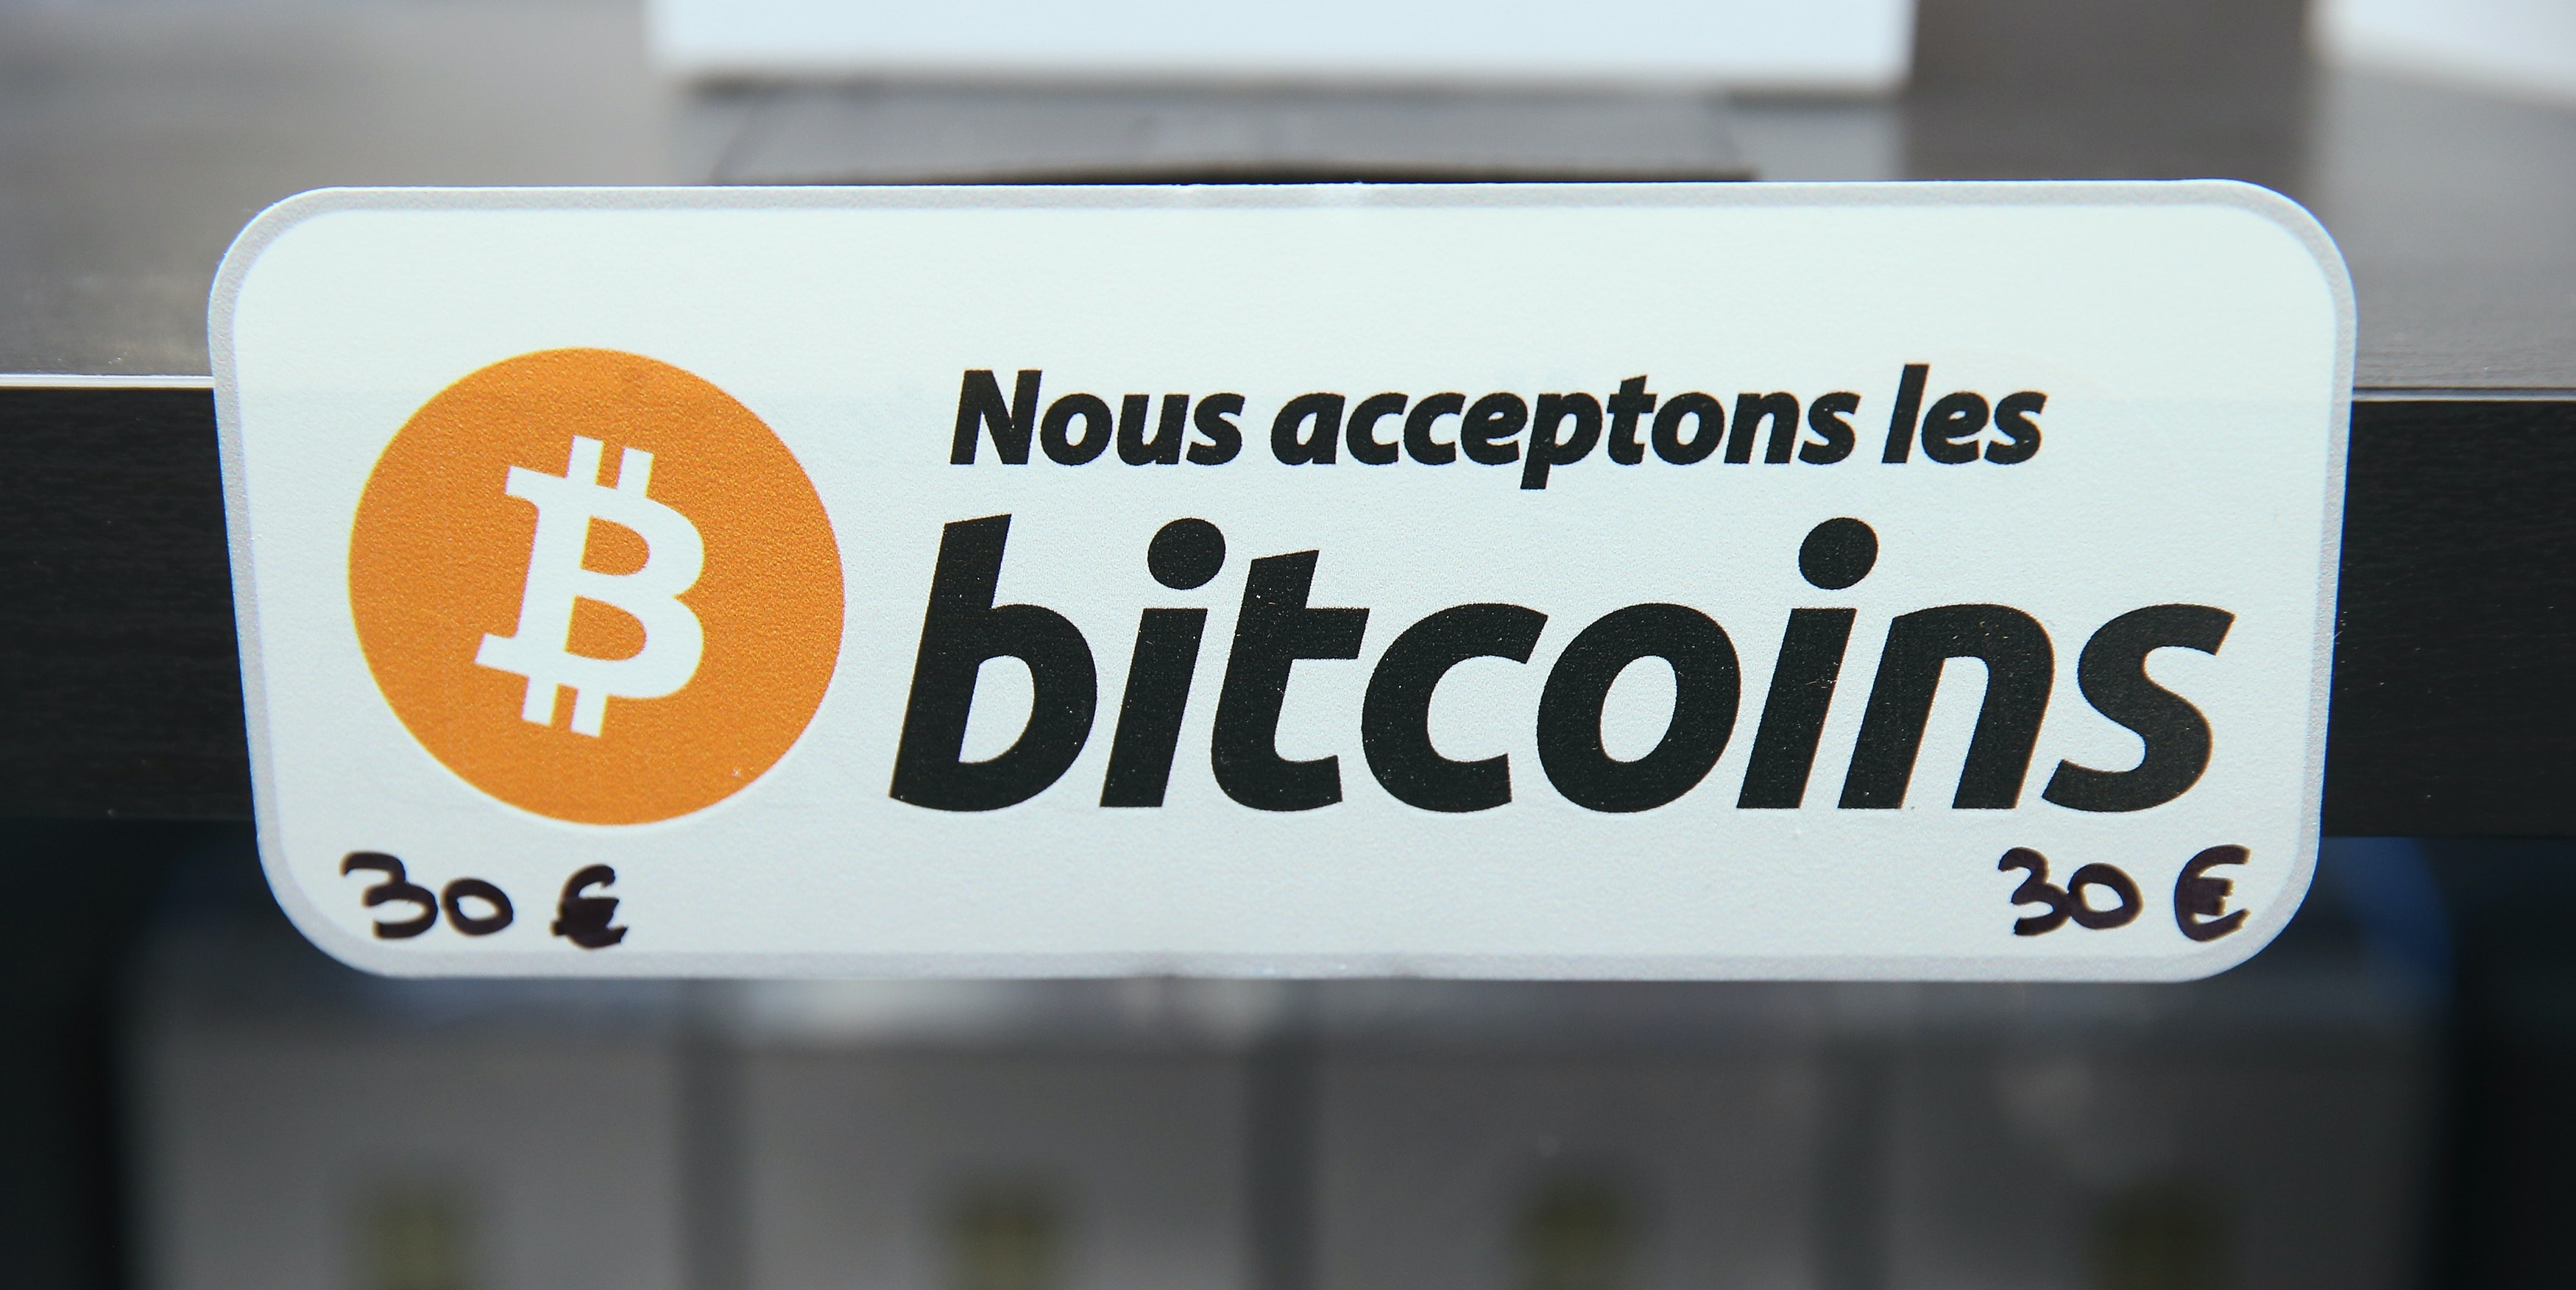 A sign in French that reads: 'We accept bitcoins' hangs at a display of the LedgerWallet Nano USB stick that enables security-protected transactions with bitcoins at the 2015 CeBIT technology trade fair on March 16, 2015 in Hanover, Germany. China is this year's CeBIT partner. CeBIT is the world's largest tech fair and will be open from March 16 through March 20.